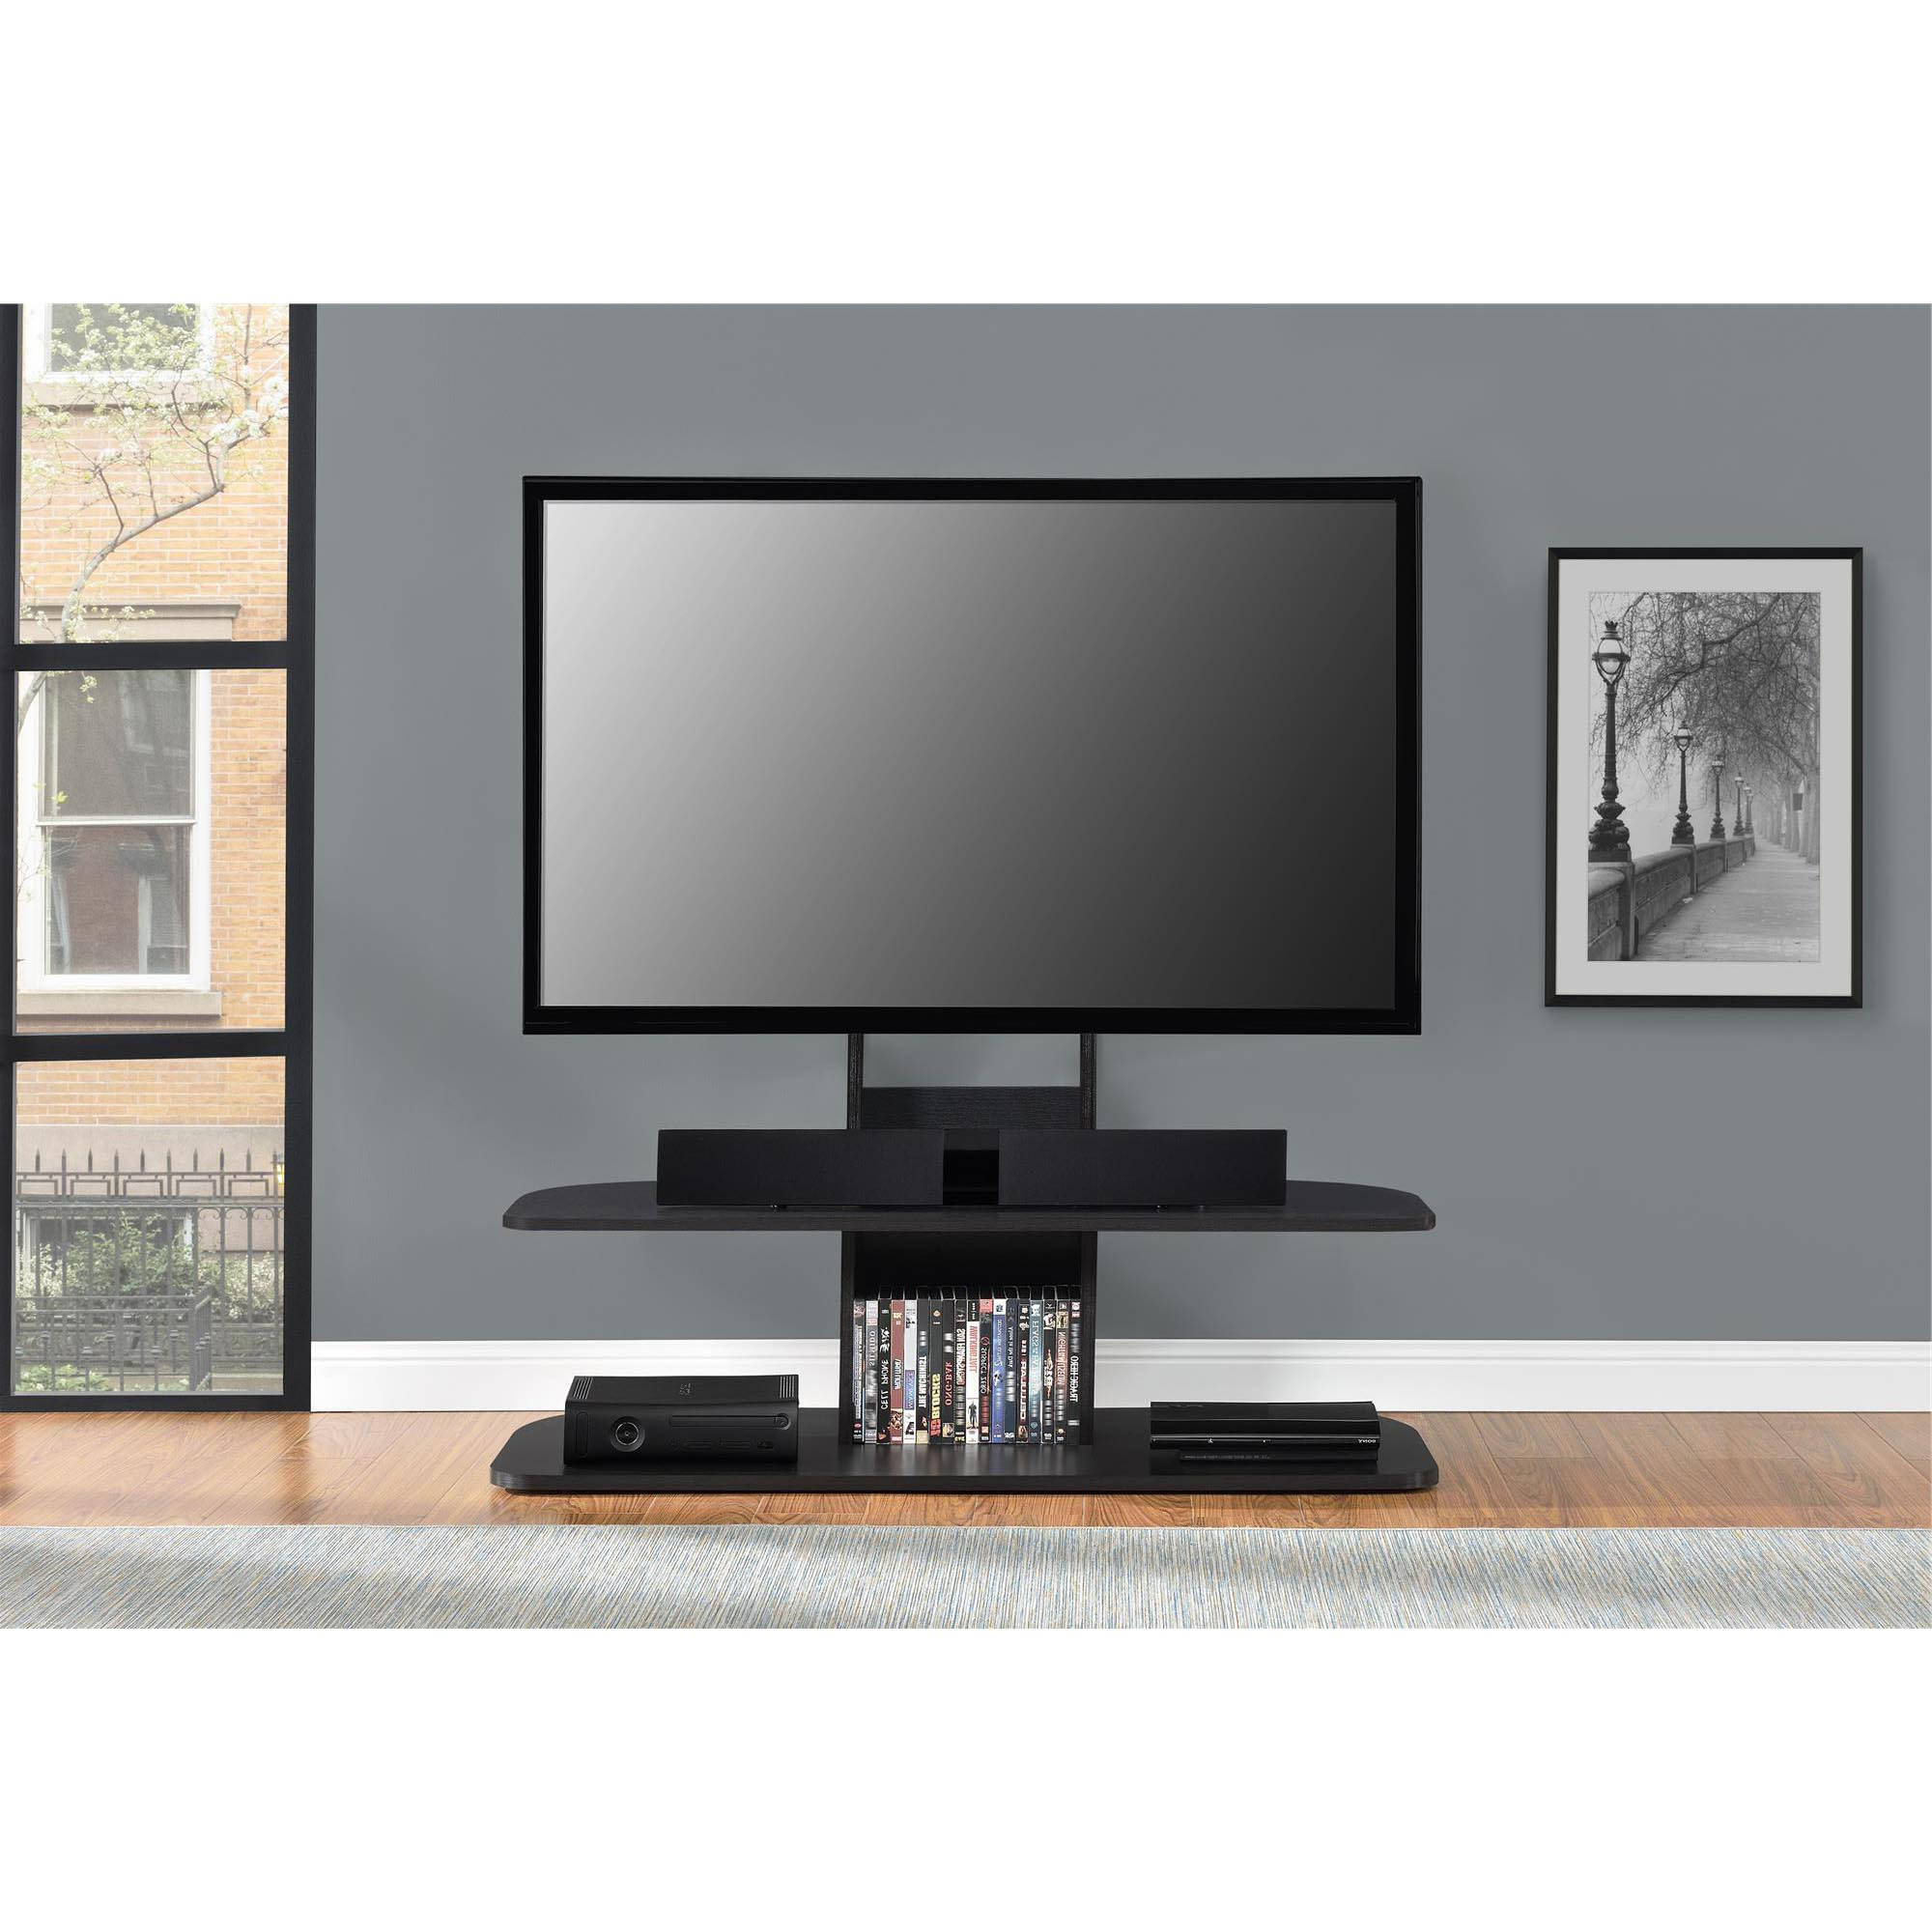 "Most Recently Released Ameriwood Home Galaxy Tv Stand With Mount For Tvs Up To 65"" Wide Within Vista 60 Inch Tv Stands (Gallery 12 of 20)"